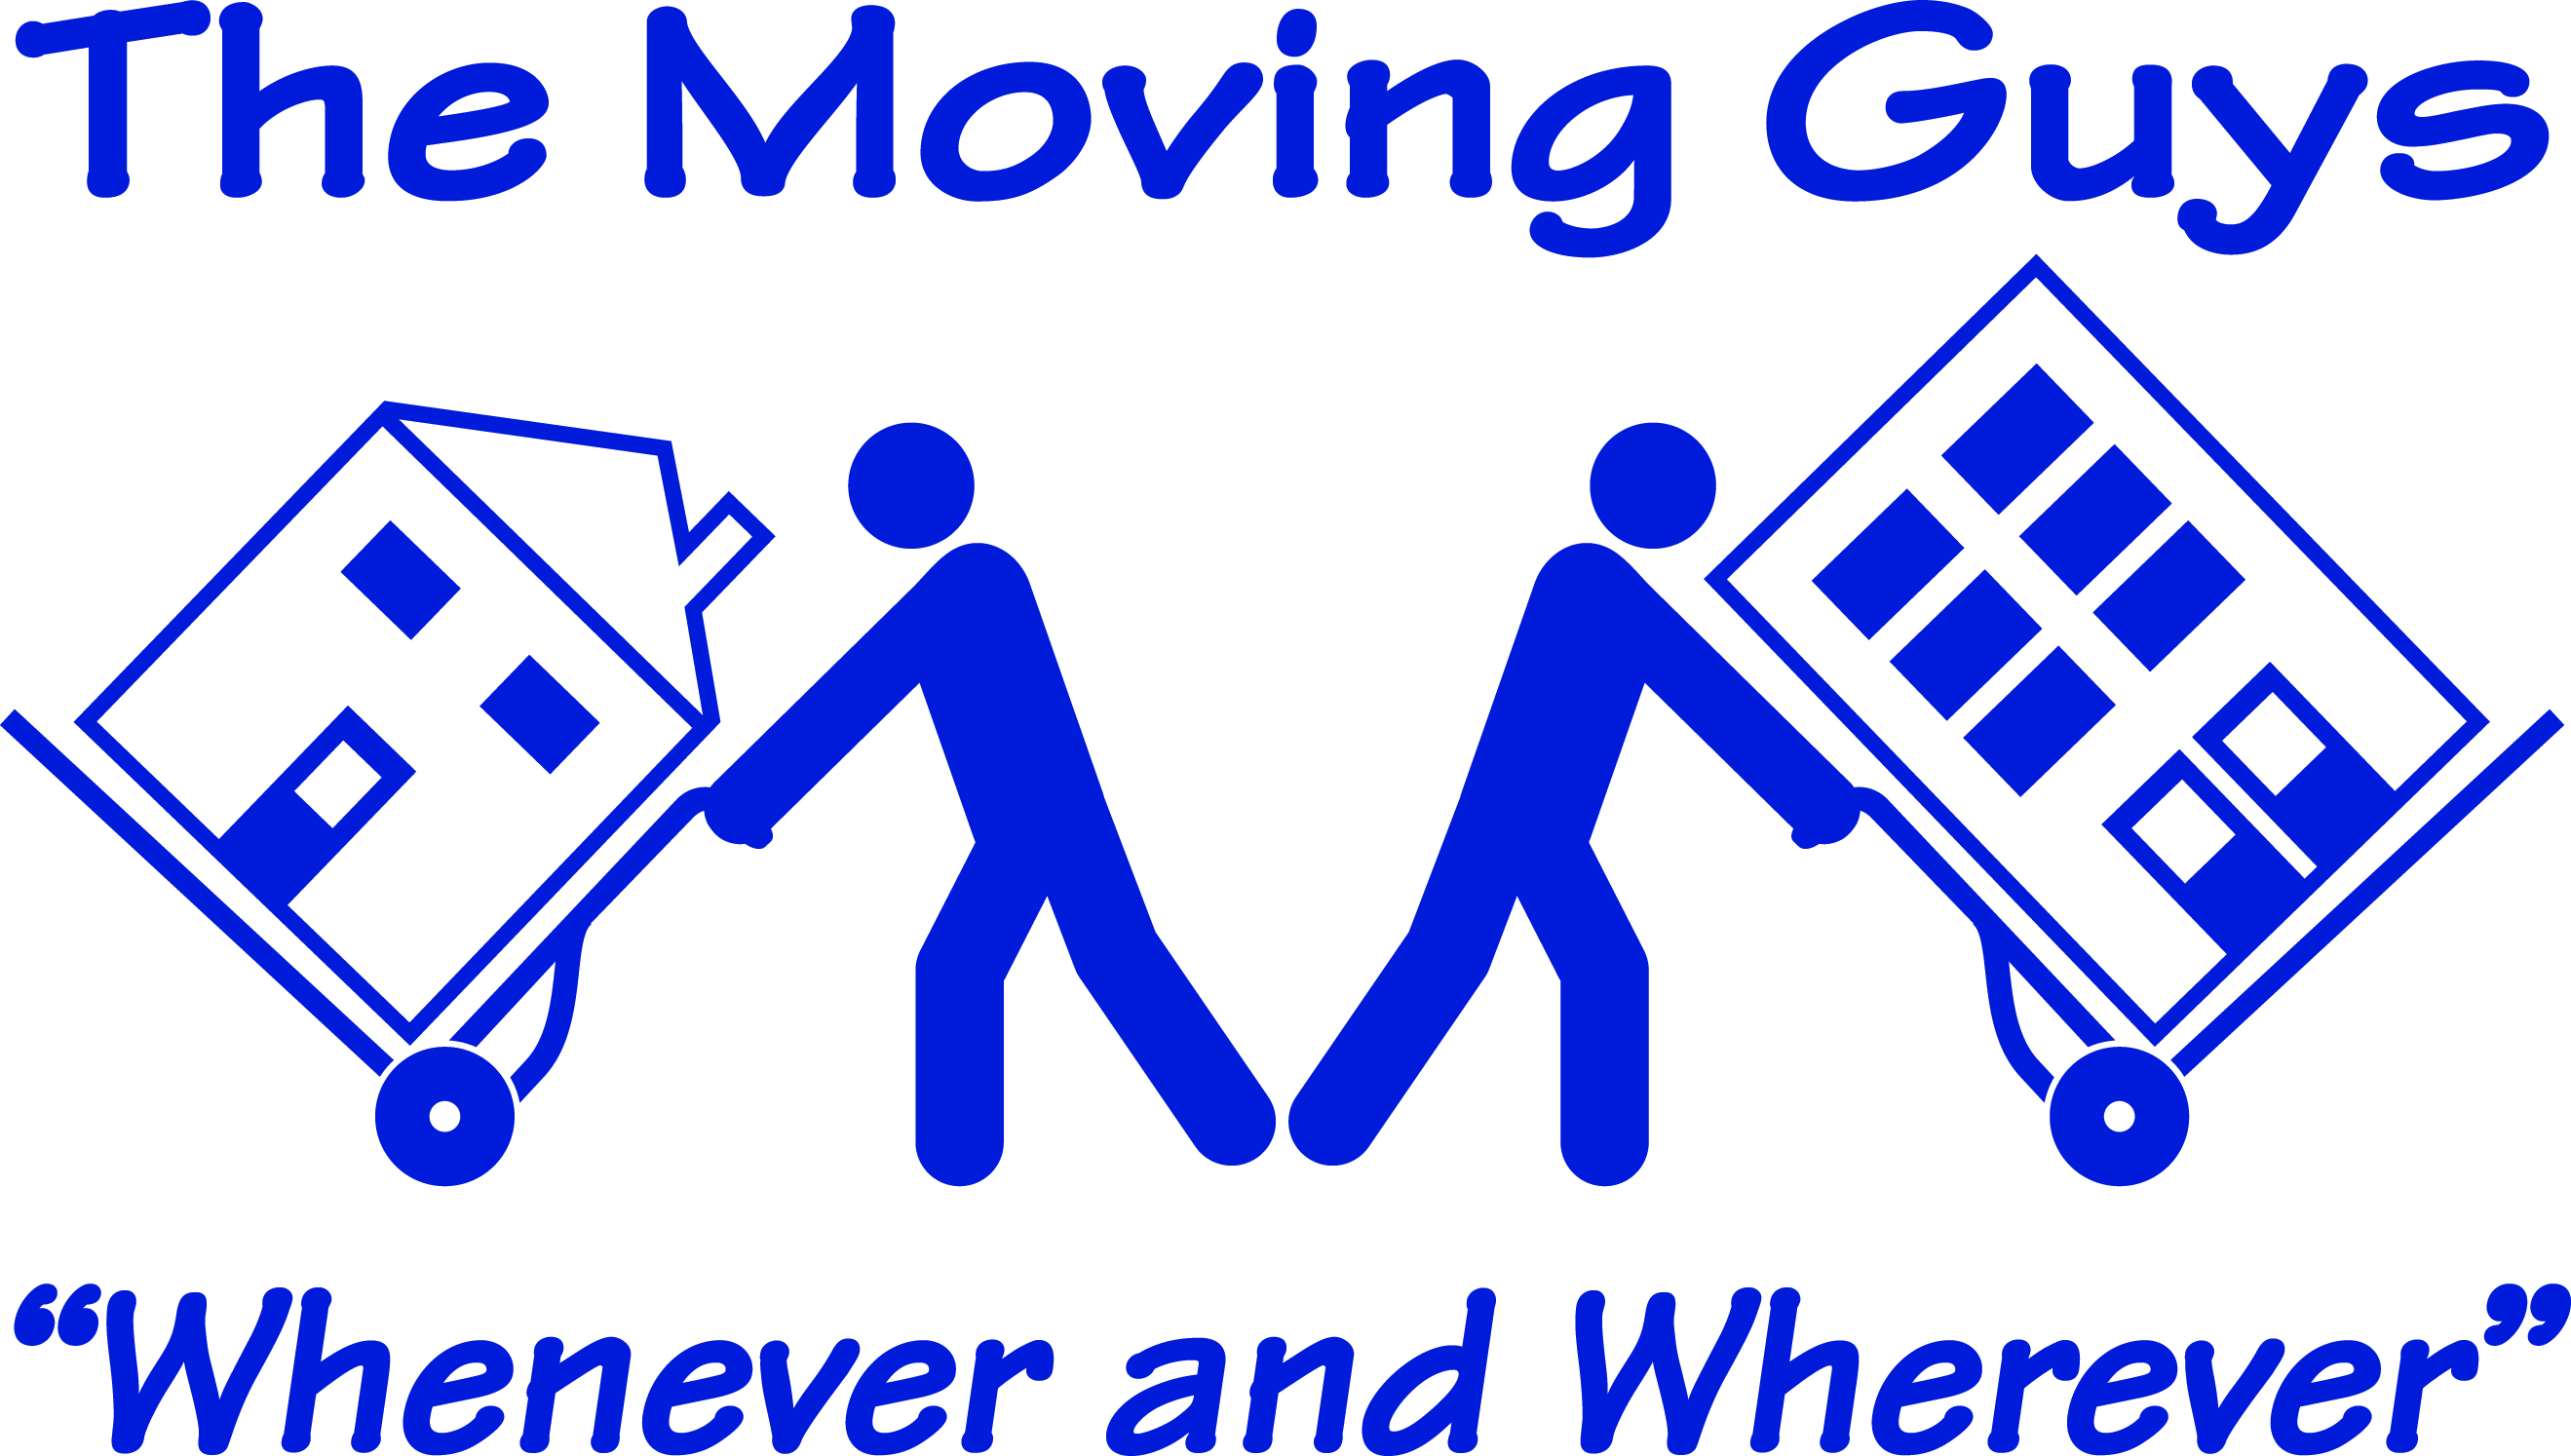 moving graphics cymk logo.jpg